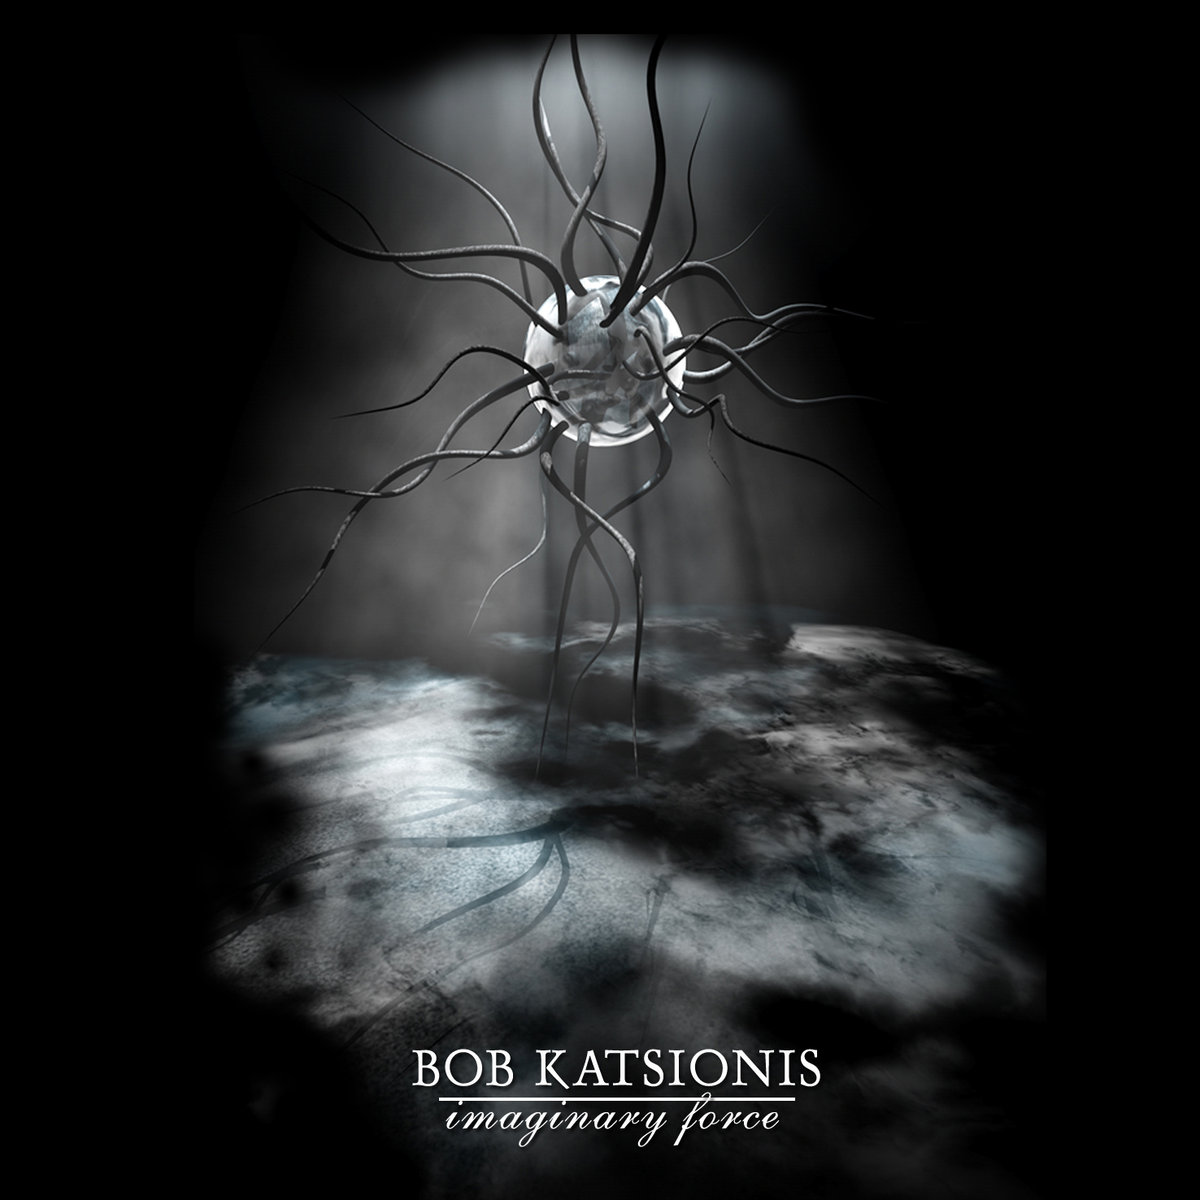 Bob Katsionis - Imaginary Force (2004)